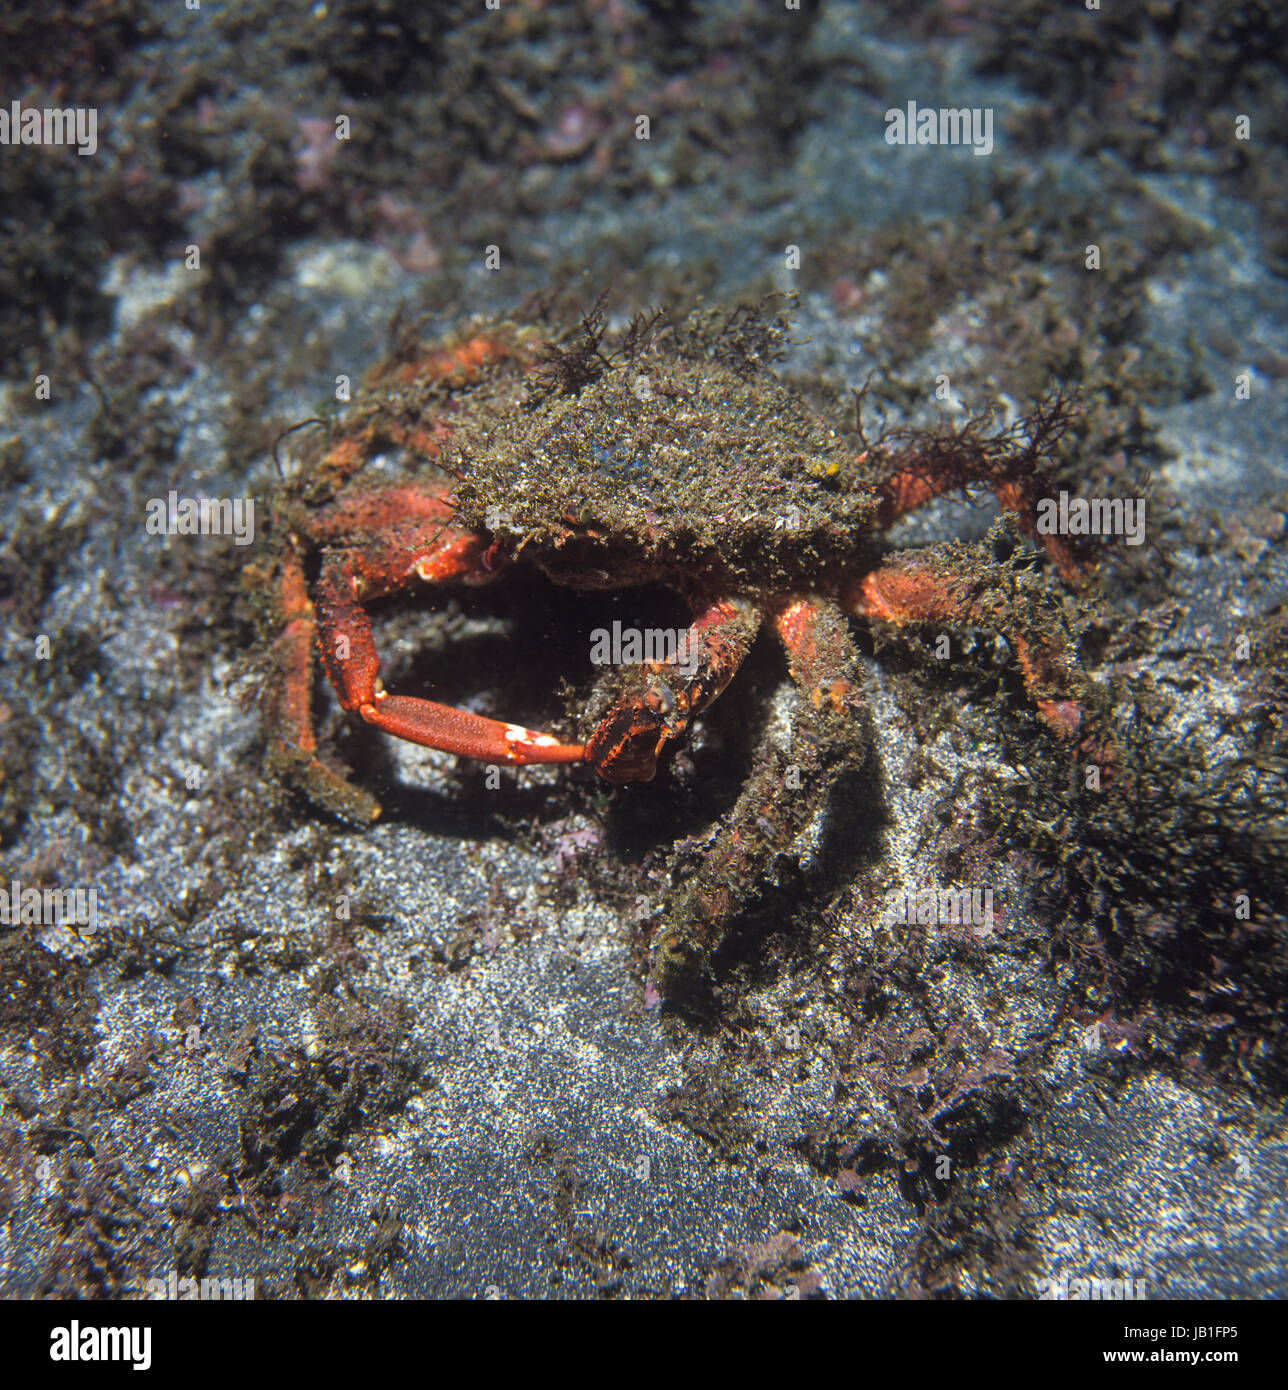 Spiny spider crab, Maja squinado. It is a seafood with great commercial value. Azores, Portugal - Stock Image